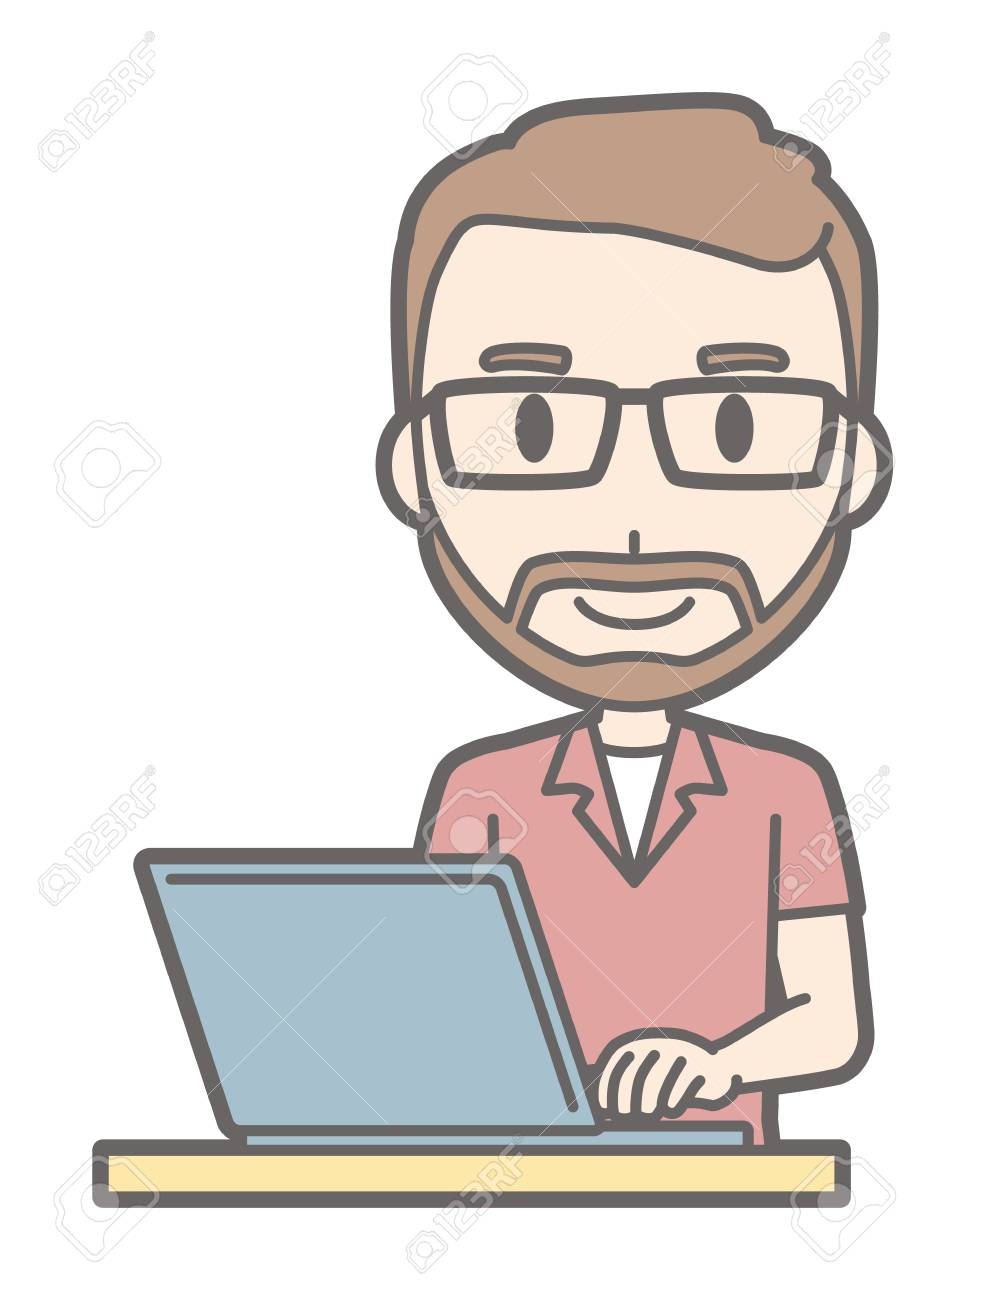 A man who wears eyeglasses and has a beard is operating a laptop computer - 92779490